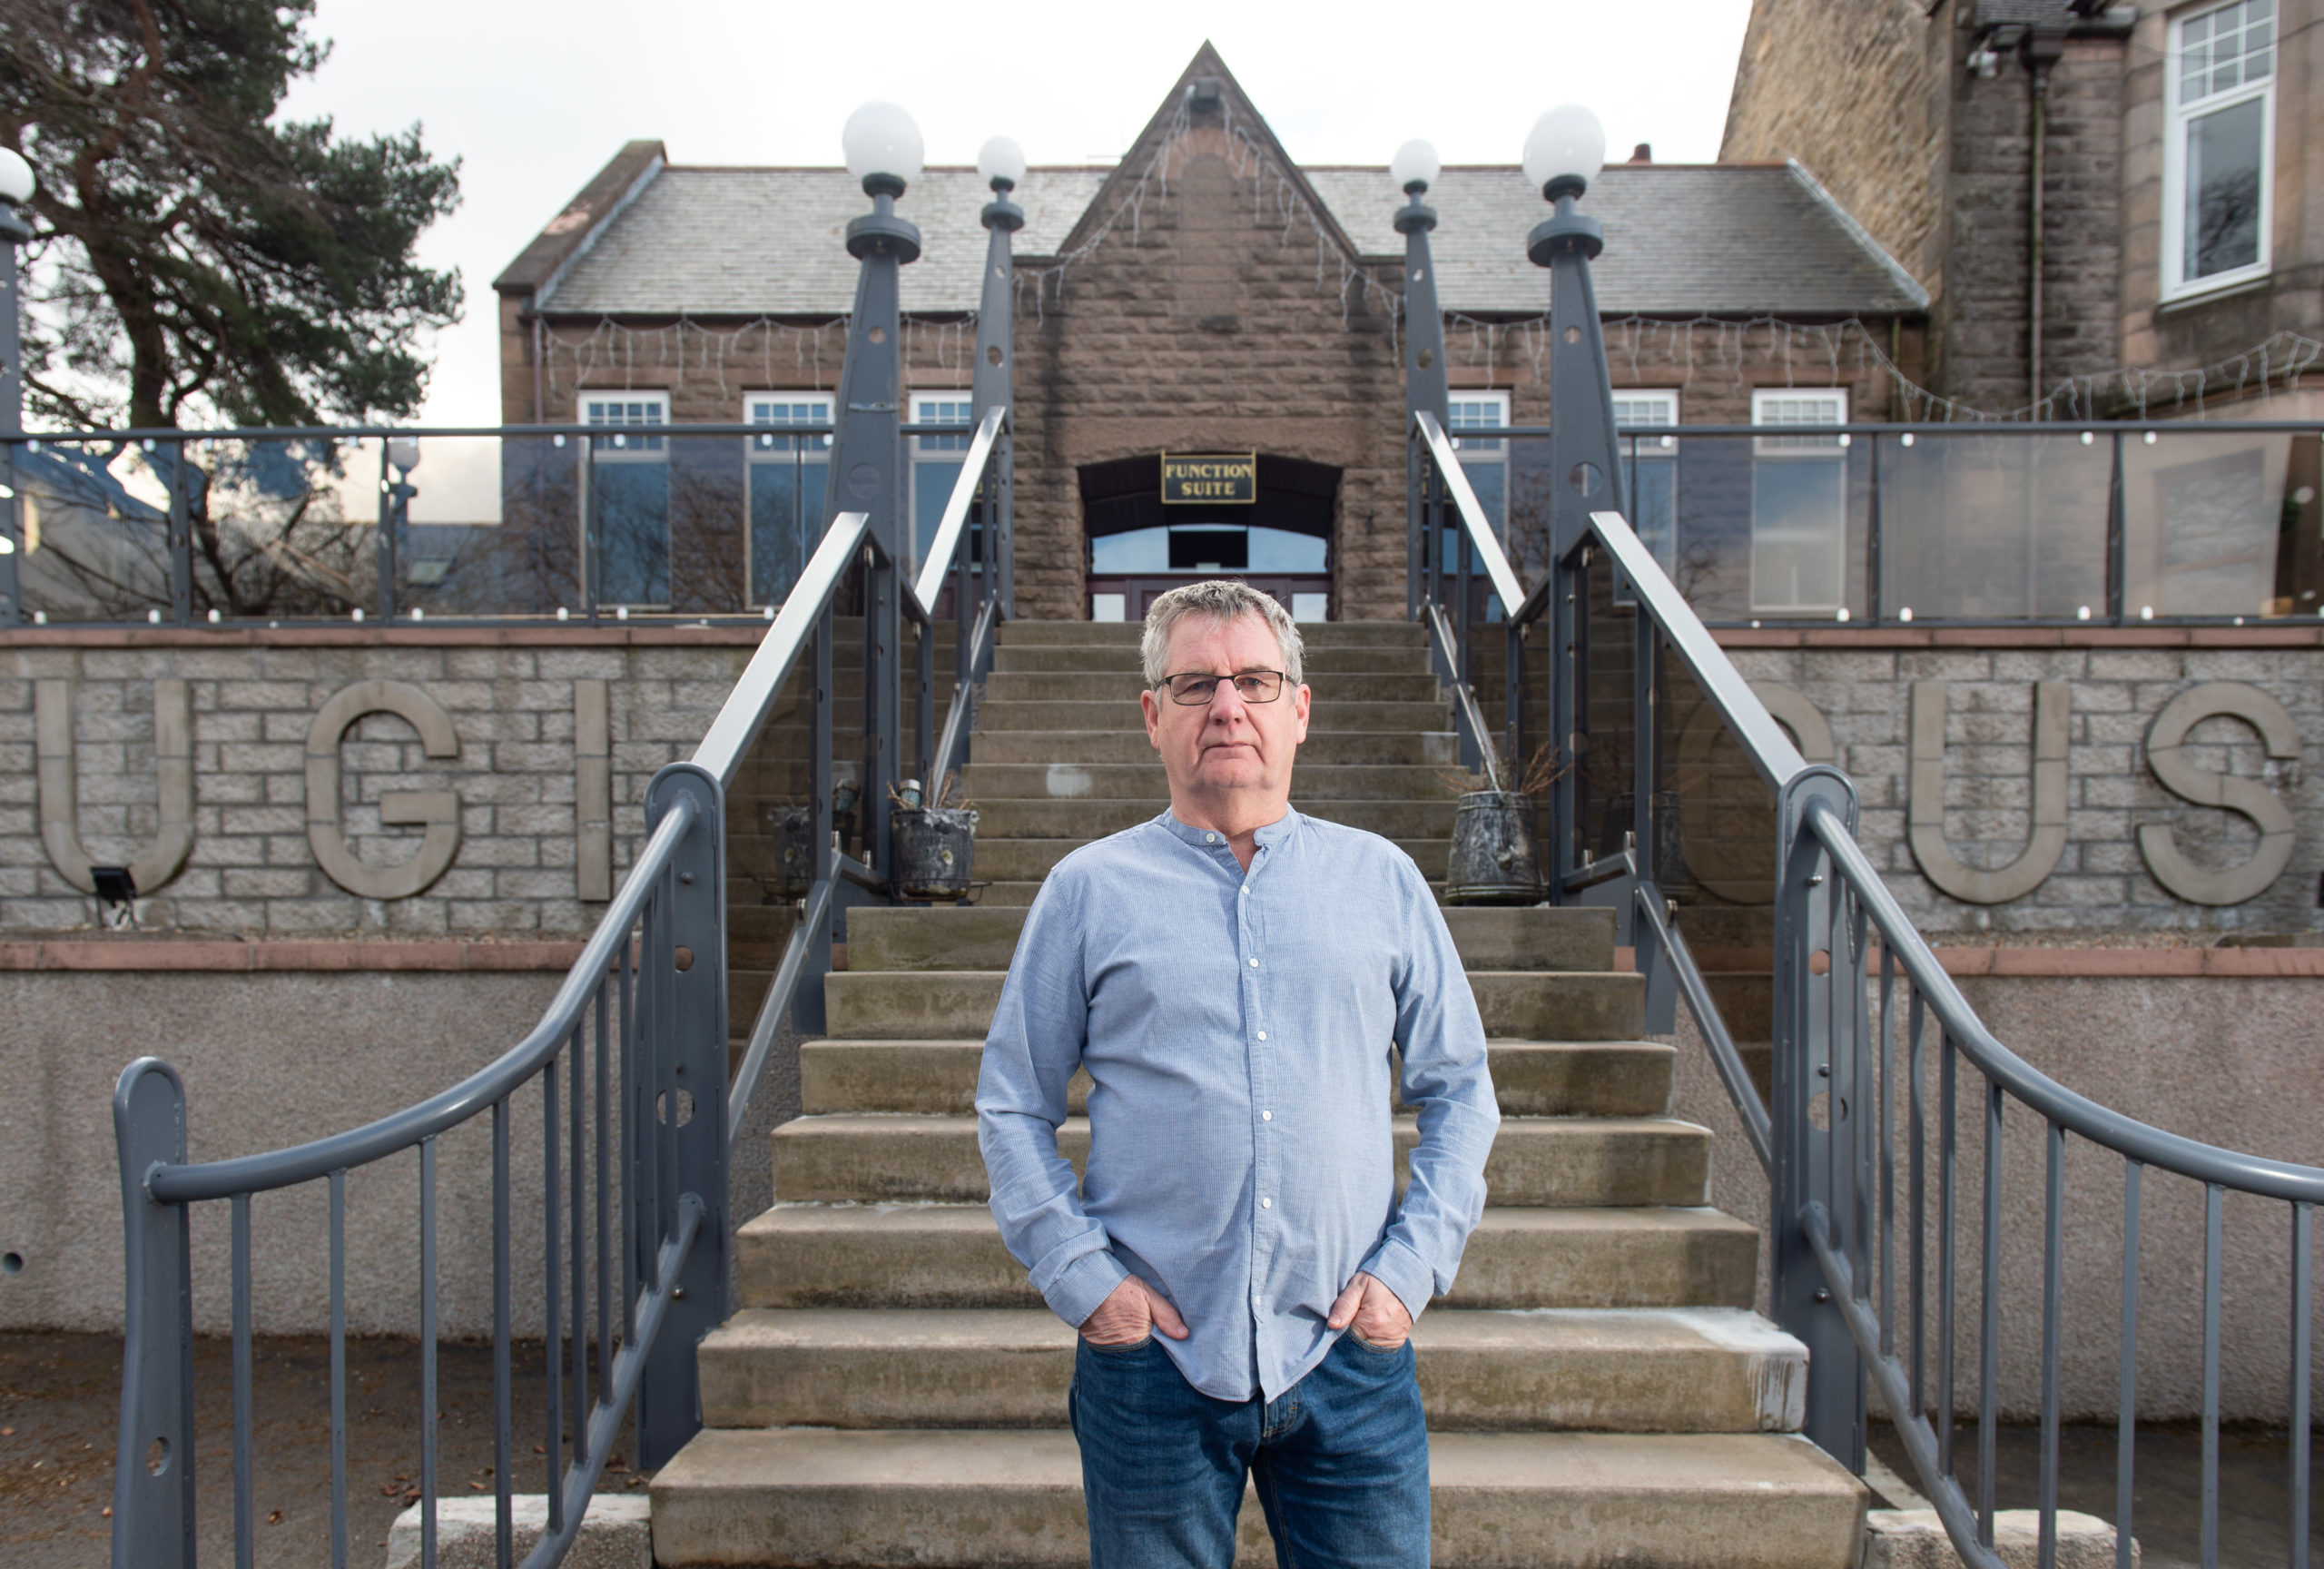 Hotel owner Robbie Martin in front of his hotel, Ugie House Hotel. Picture by Jason Hedges